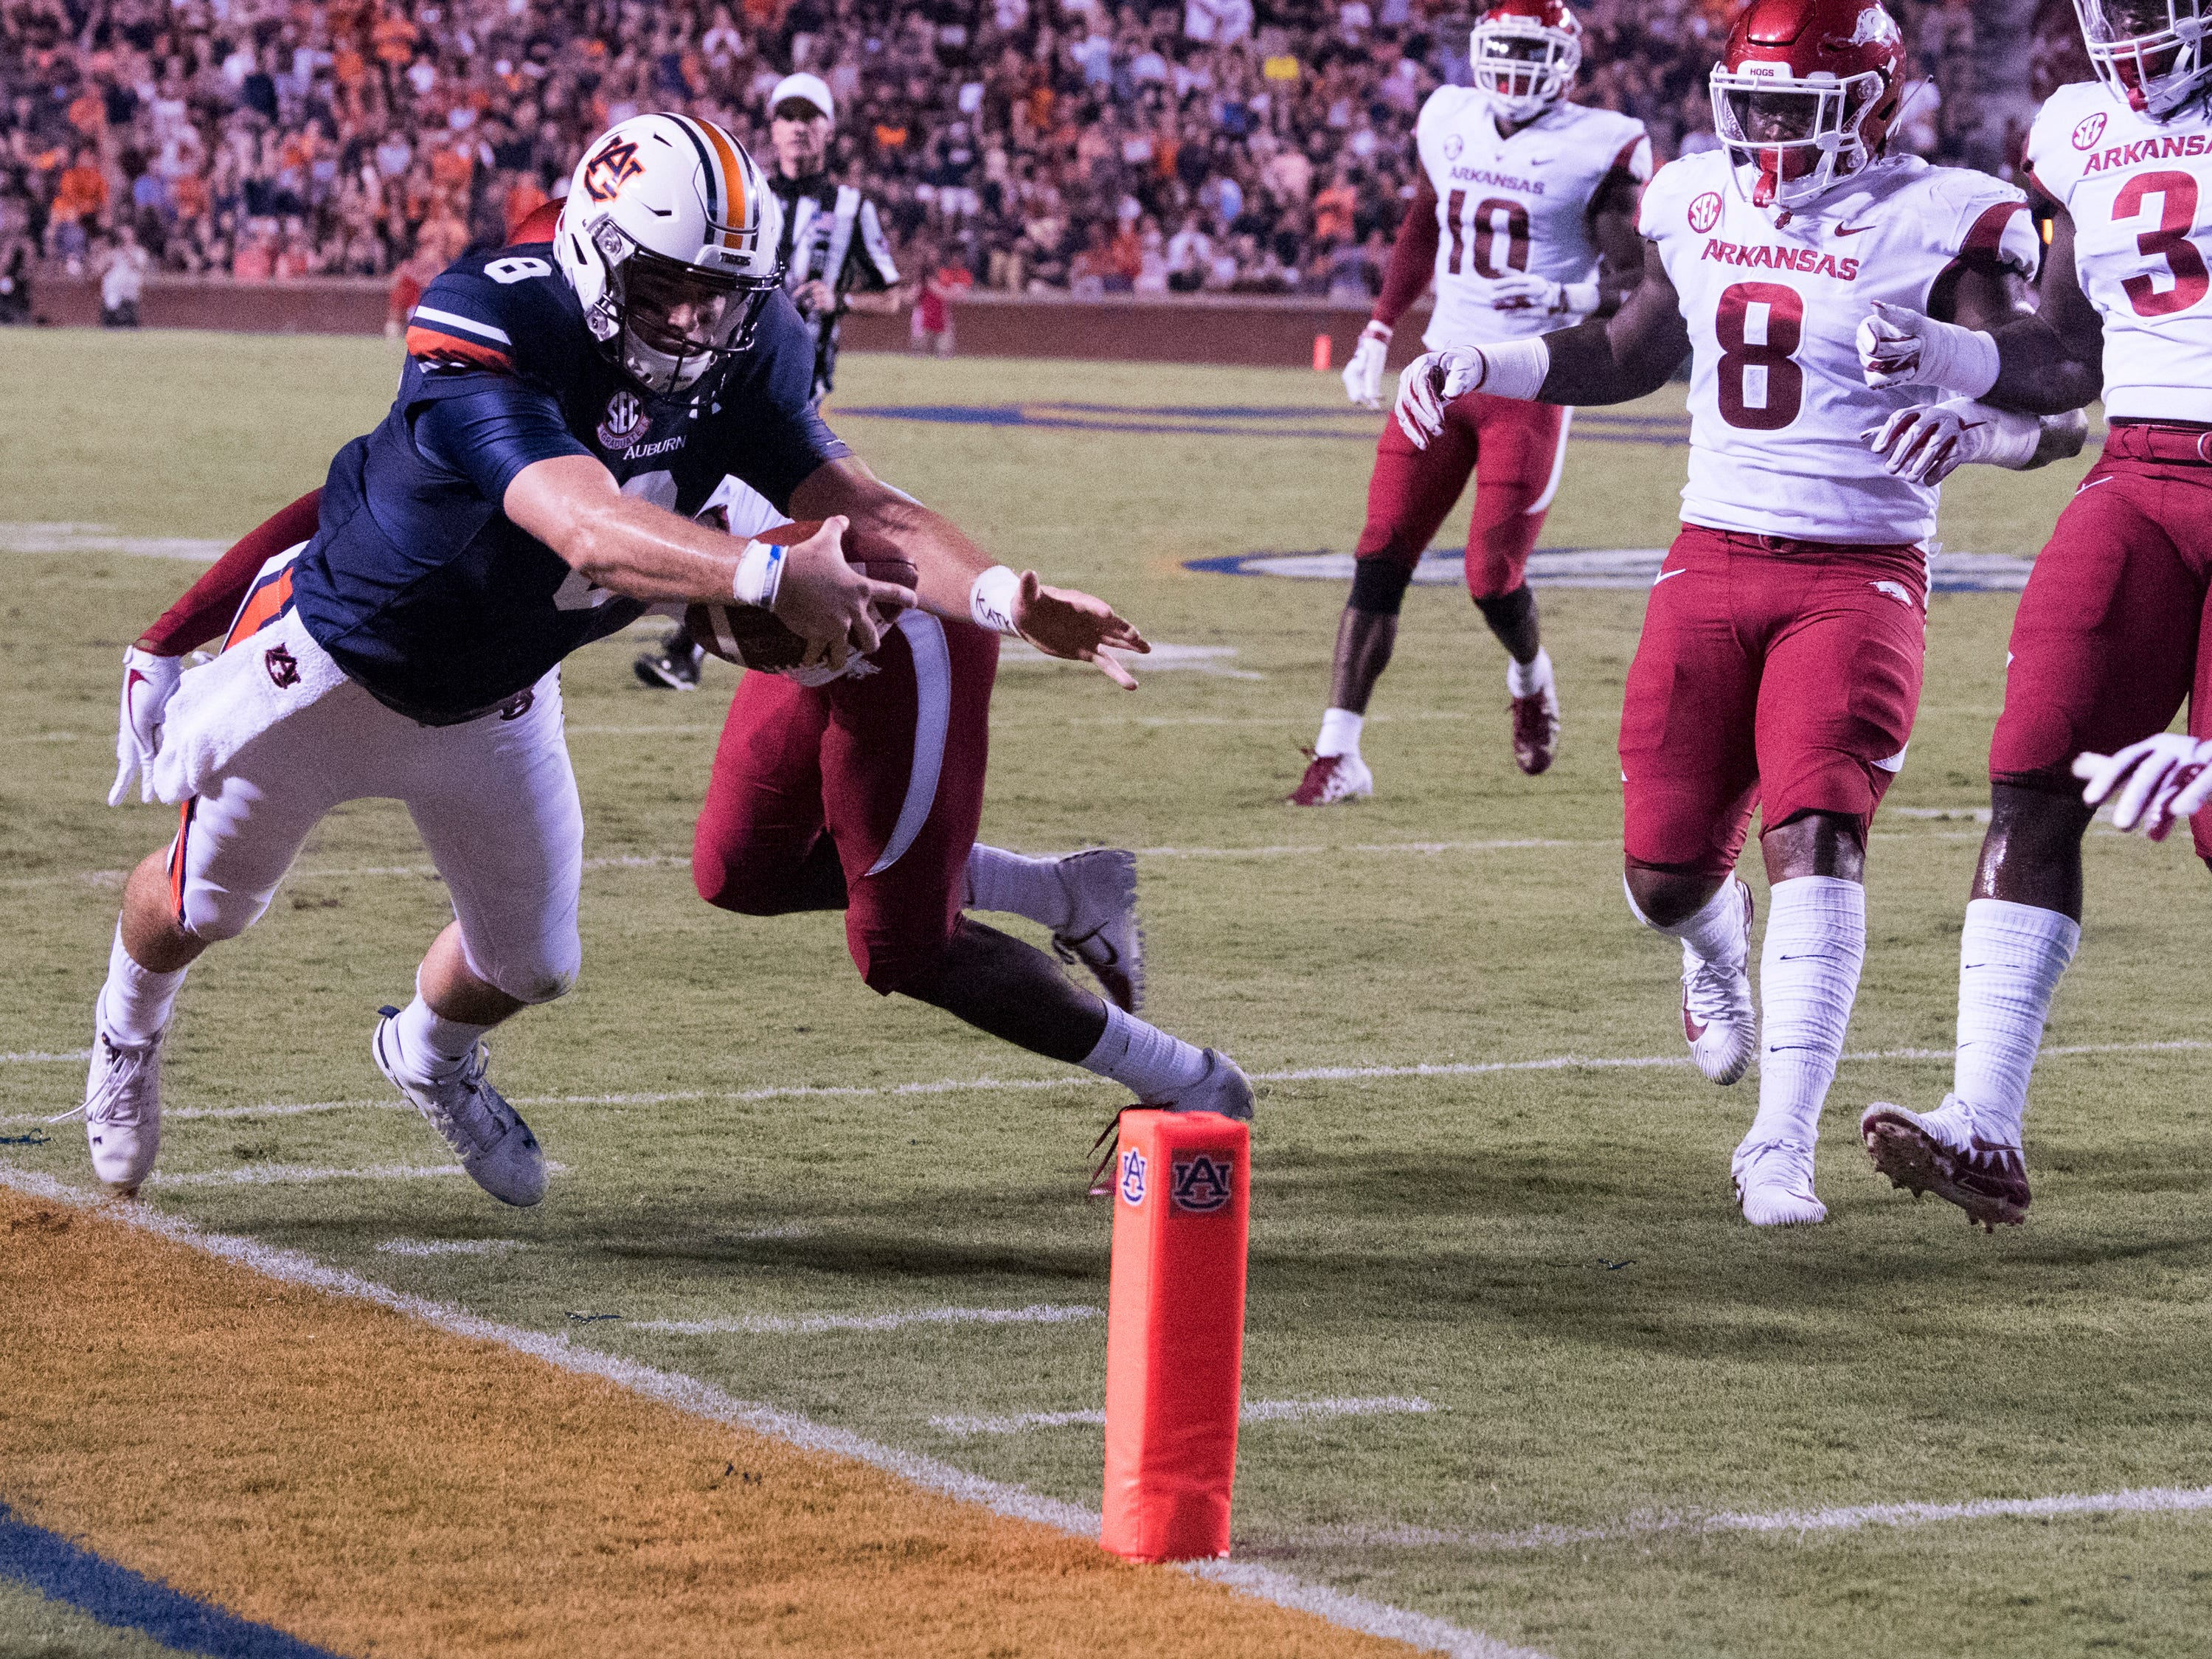 Auburn's Jarrett Stidham (8) dives short of the end zone to the 1-yard-line against  Arkansas at Jordan-Hare Stadium in Auburn, Ala., on Saturday, Sept. 21, 2018. Auburn leads Arkansas 17-0 at halftime.